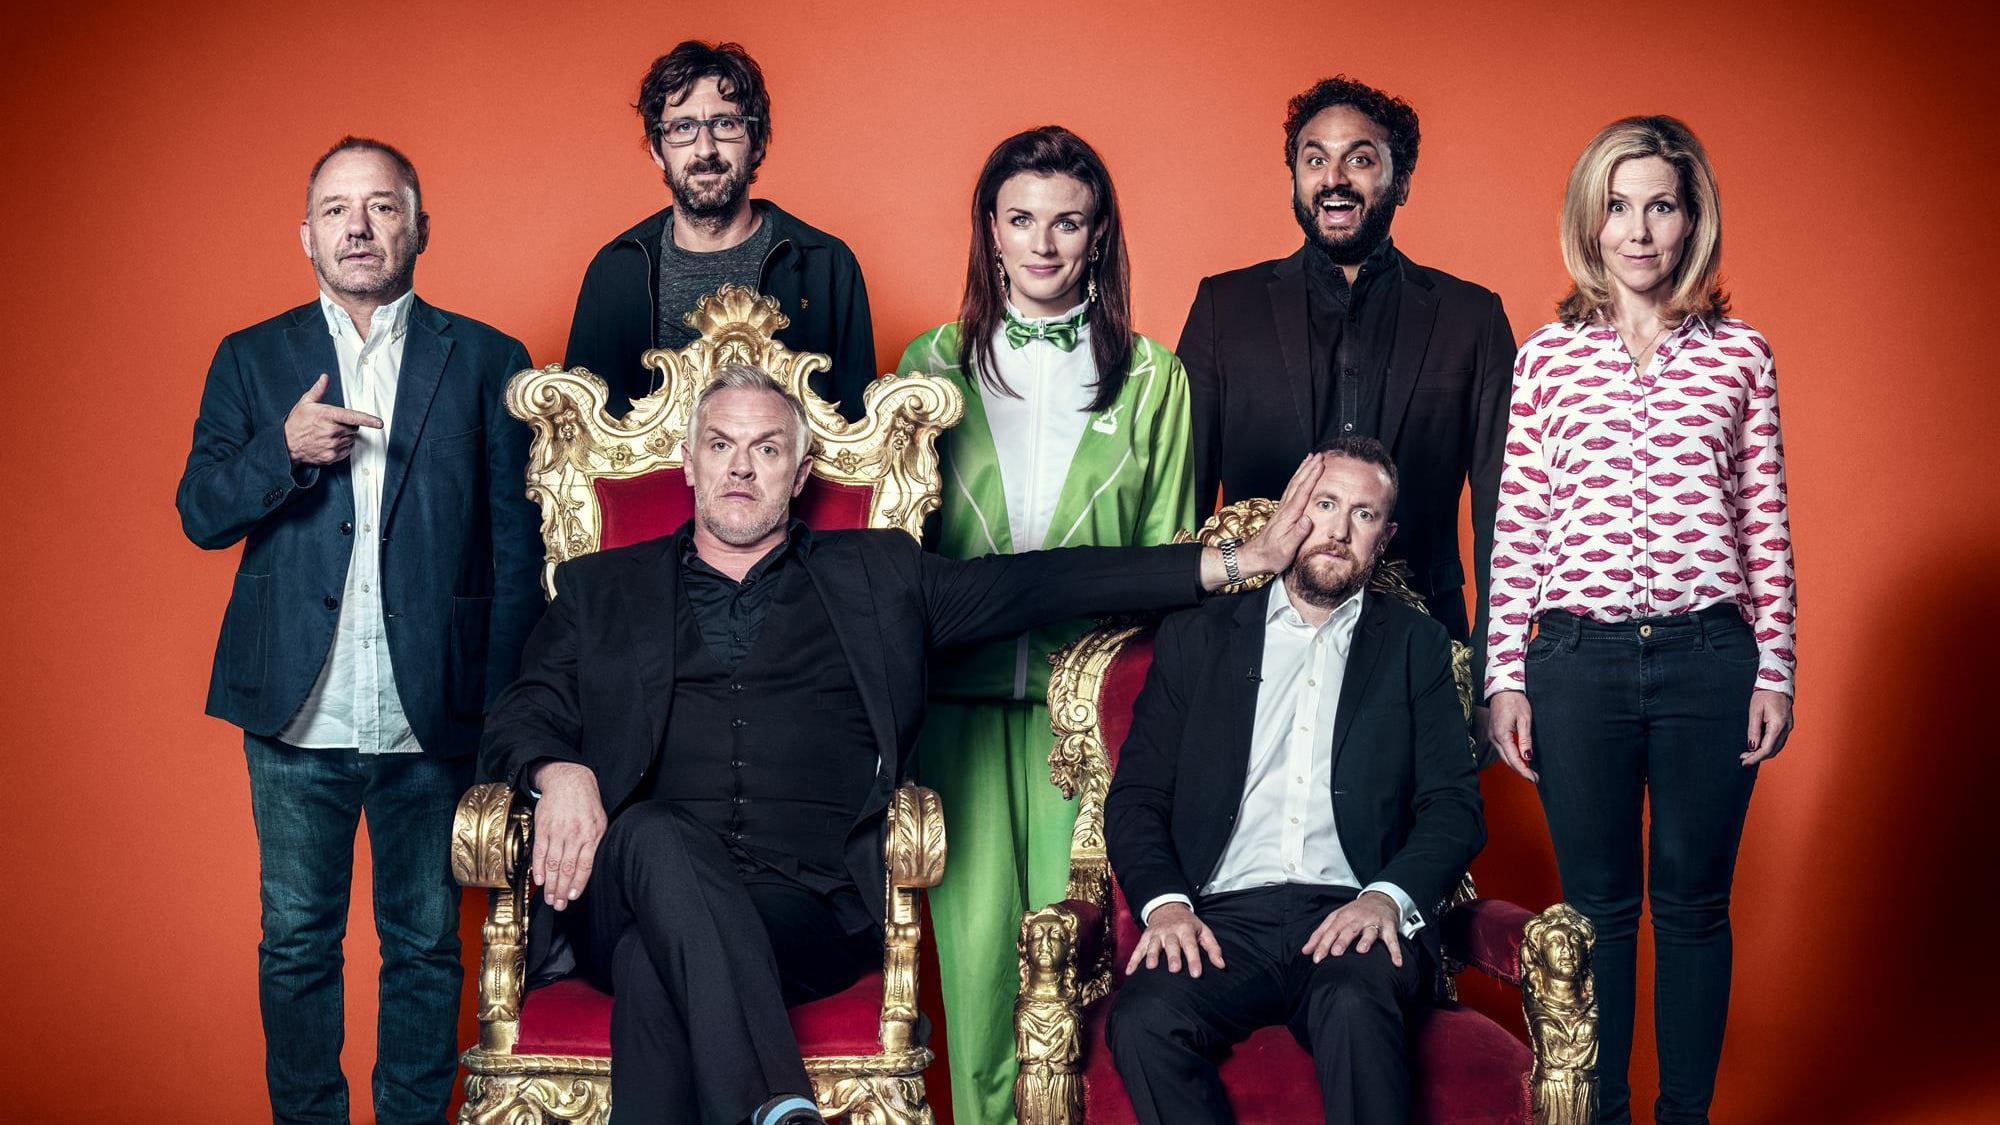 Taskmaster - Season 8 Episode 10 : Clumpy swayey clumsy man.